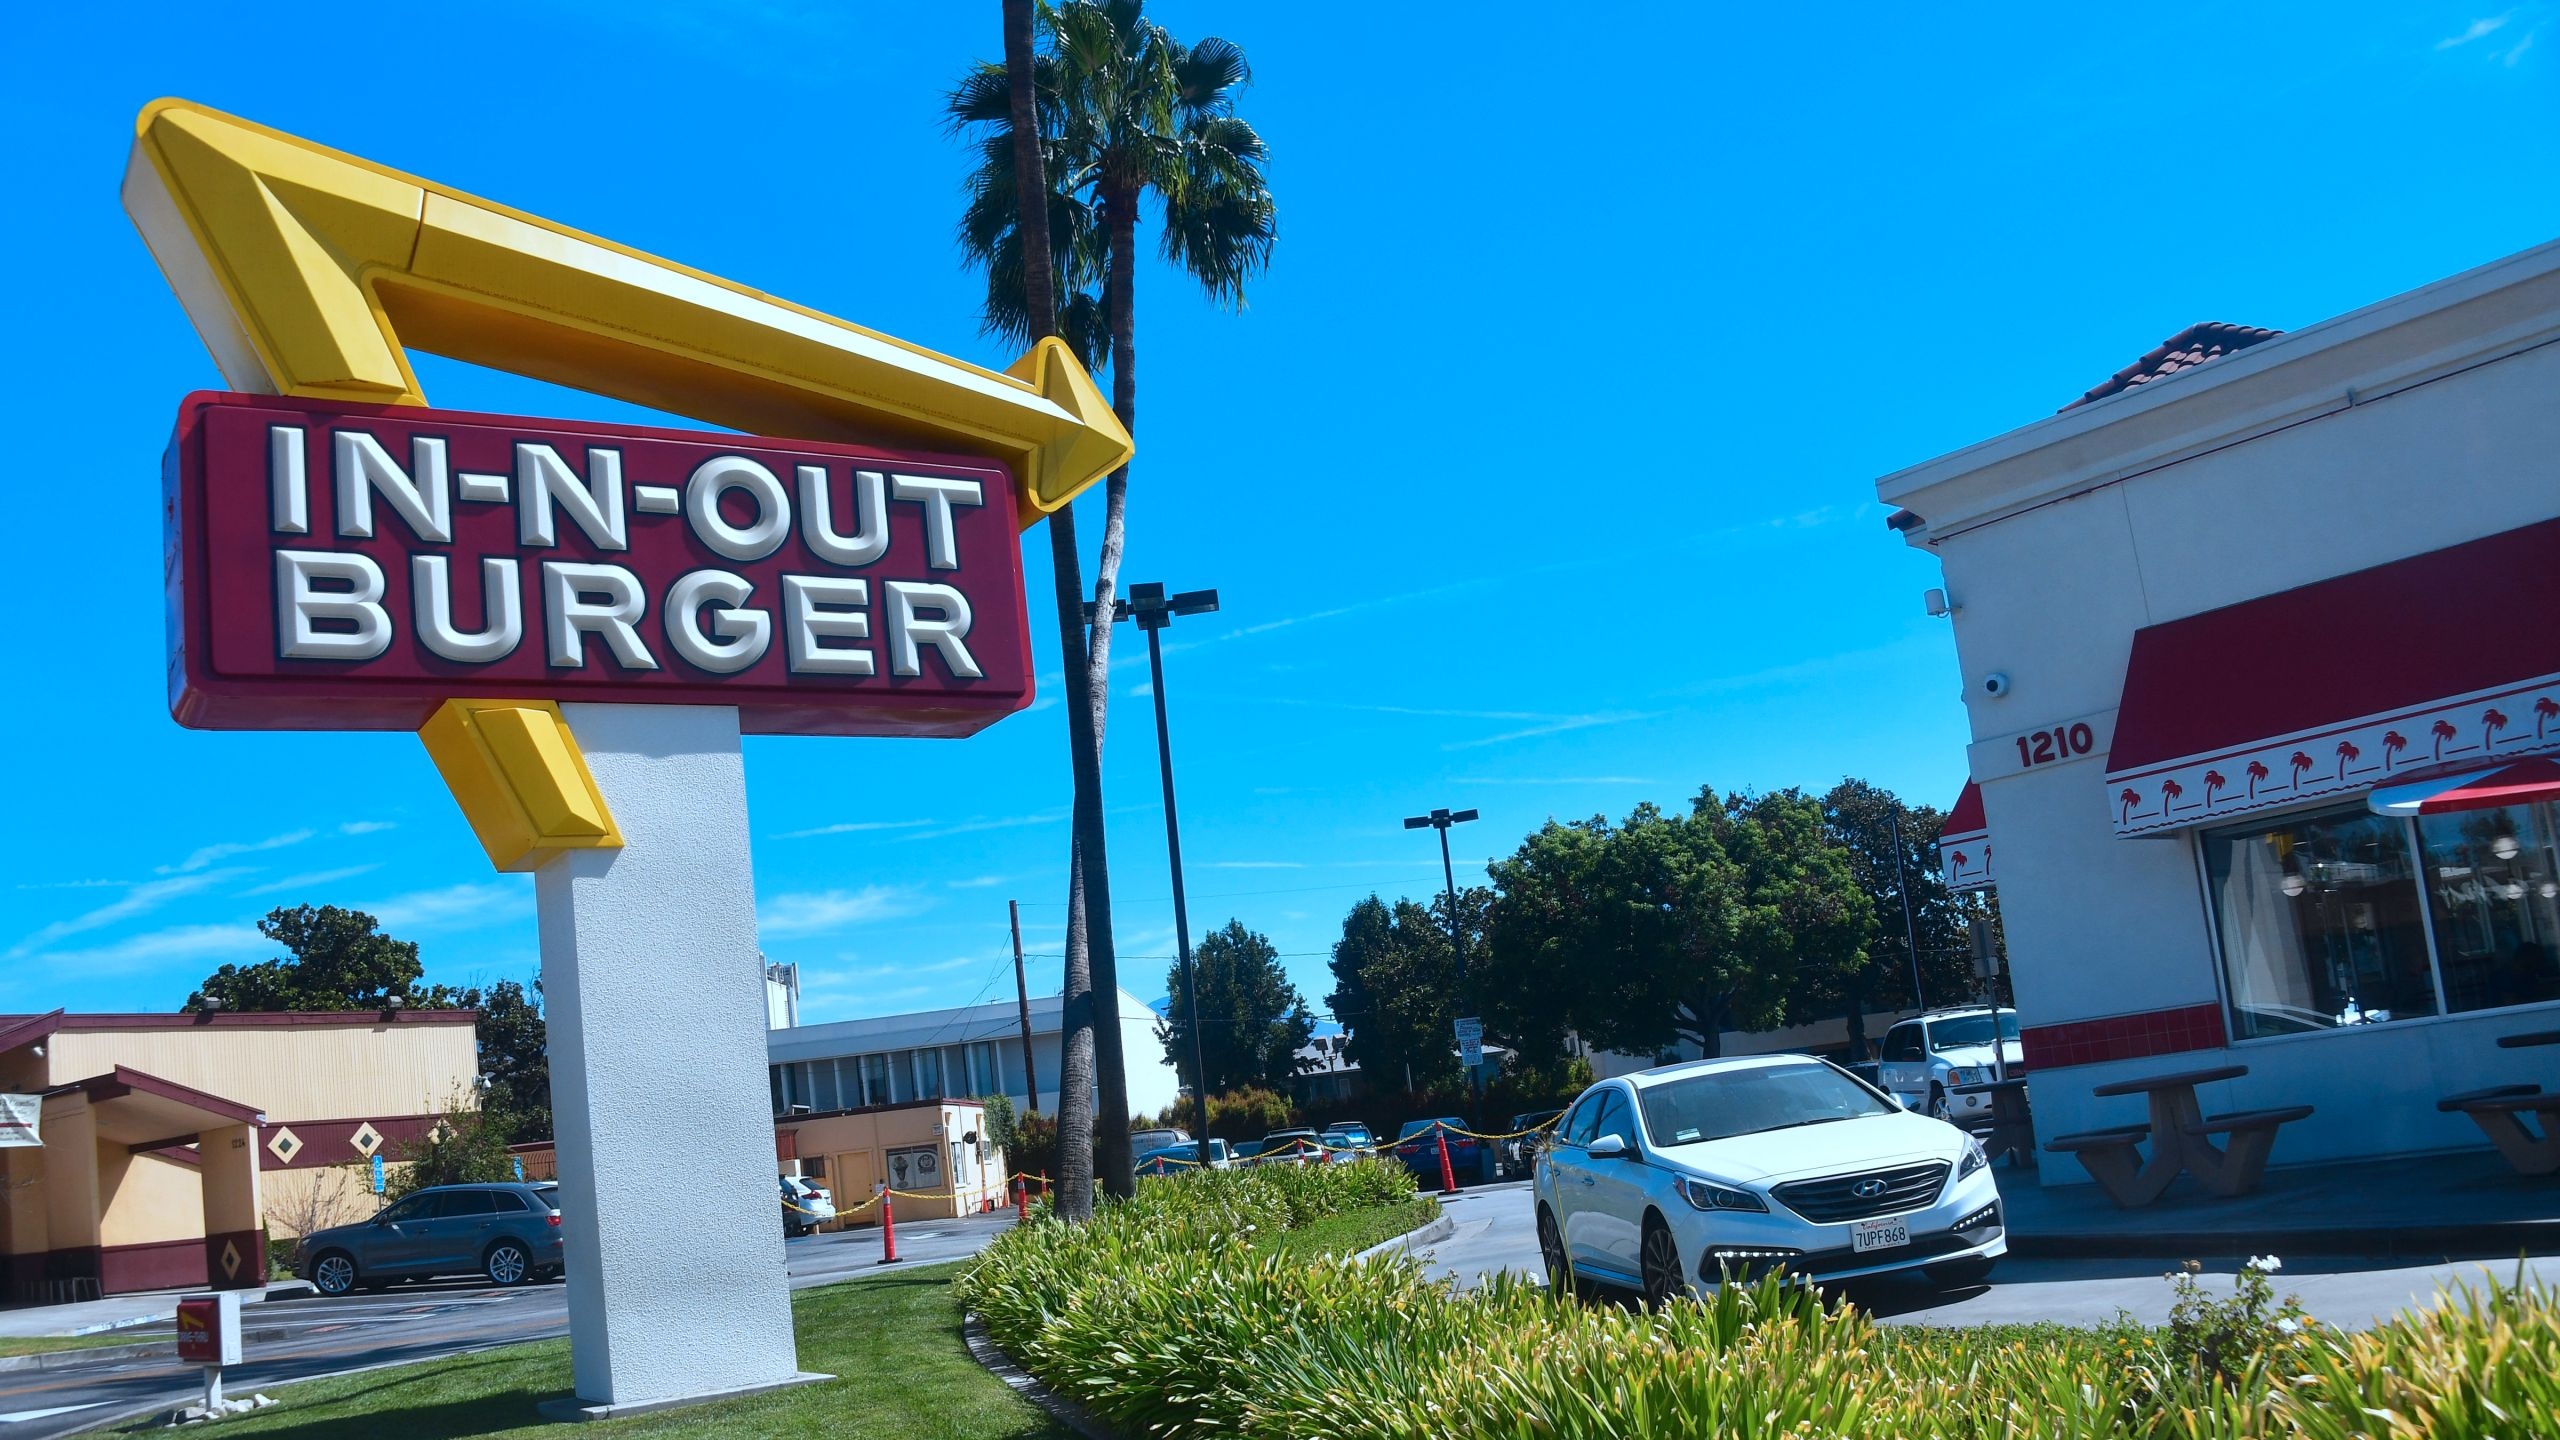 The videos began appearing on TikTok earlier this month., but In-N-Out says there's no truth to their claims. (Frederic J. Brown/AFP via Getty Images)